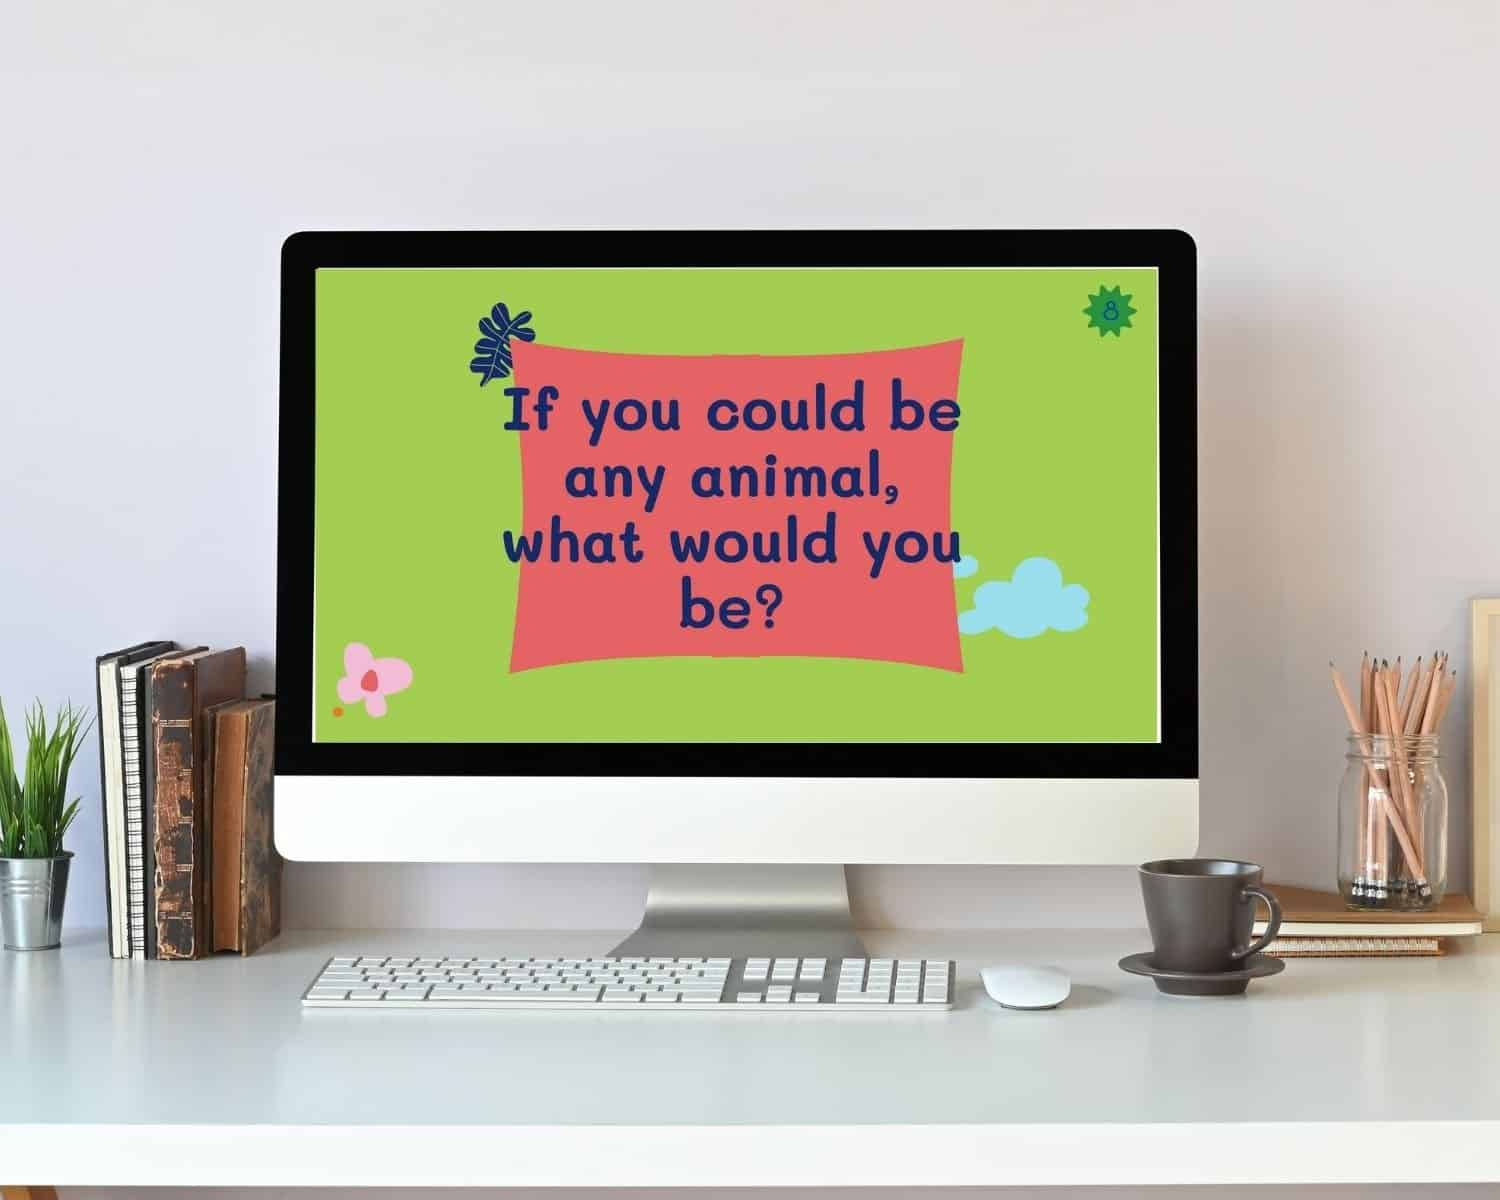 """""""If you could be any animal, what would you be"""" virtual kids' conversation card game question is shown on a computer"""